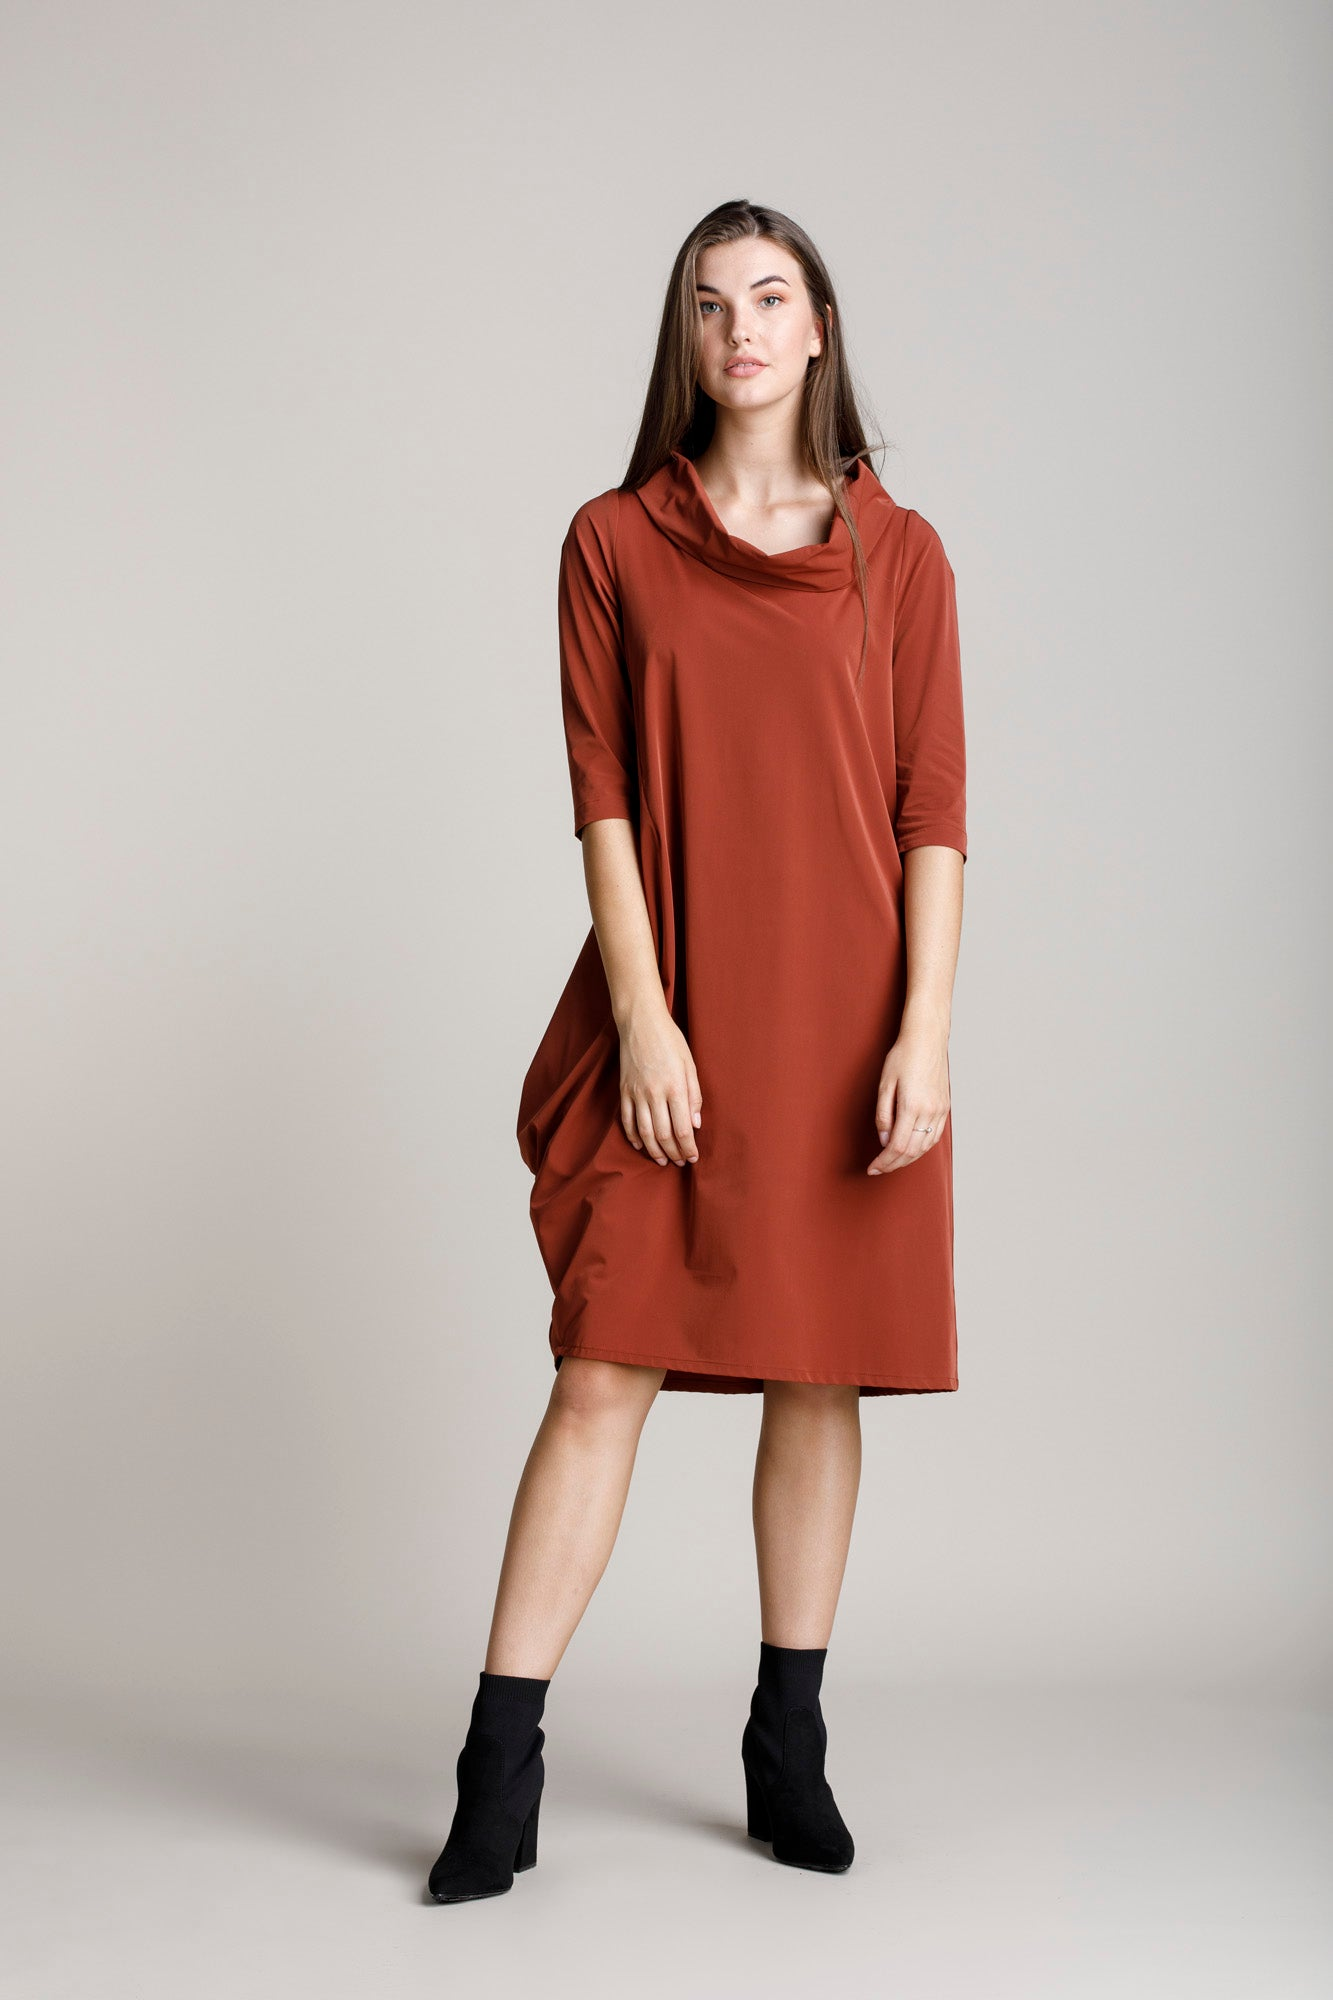 Rust Cowl Neck 3/4 Sleeve Dress 5253